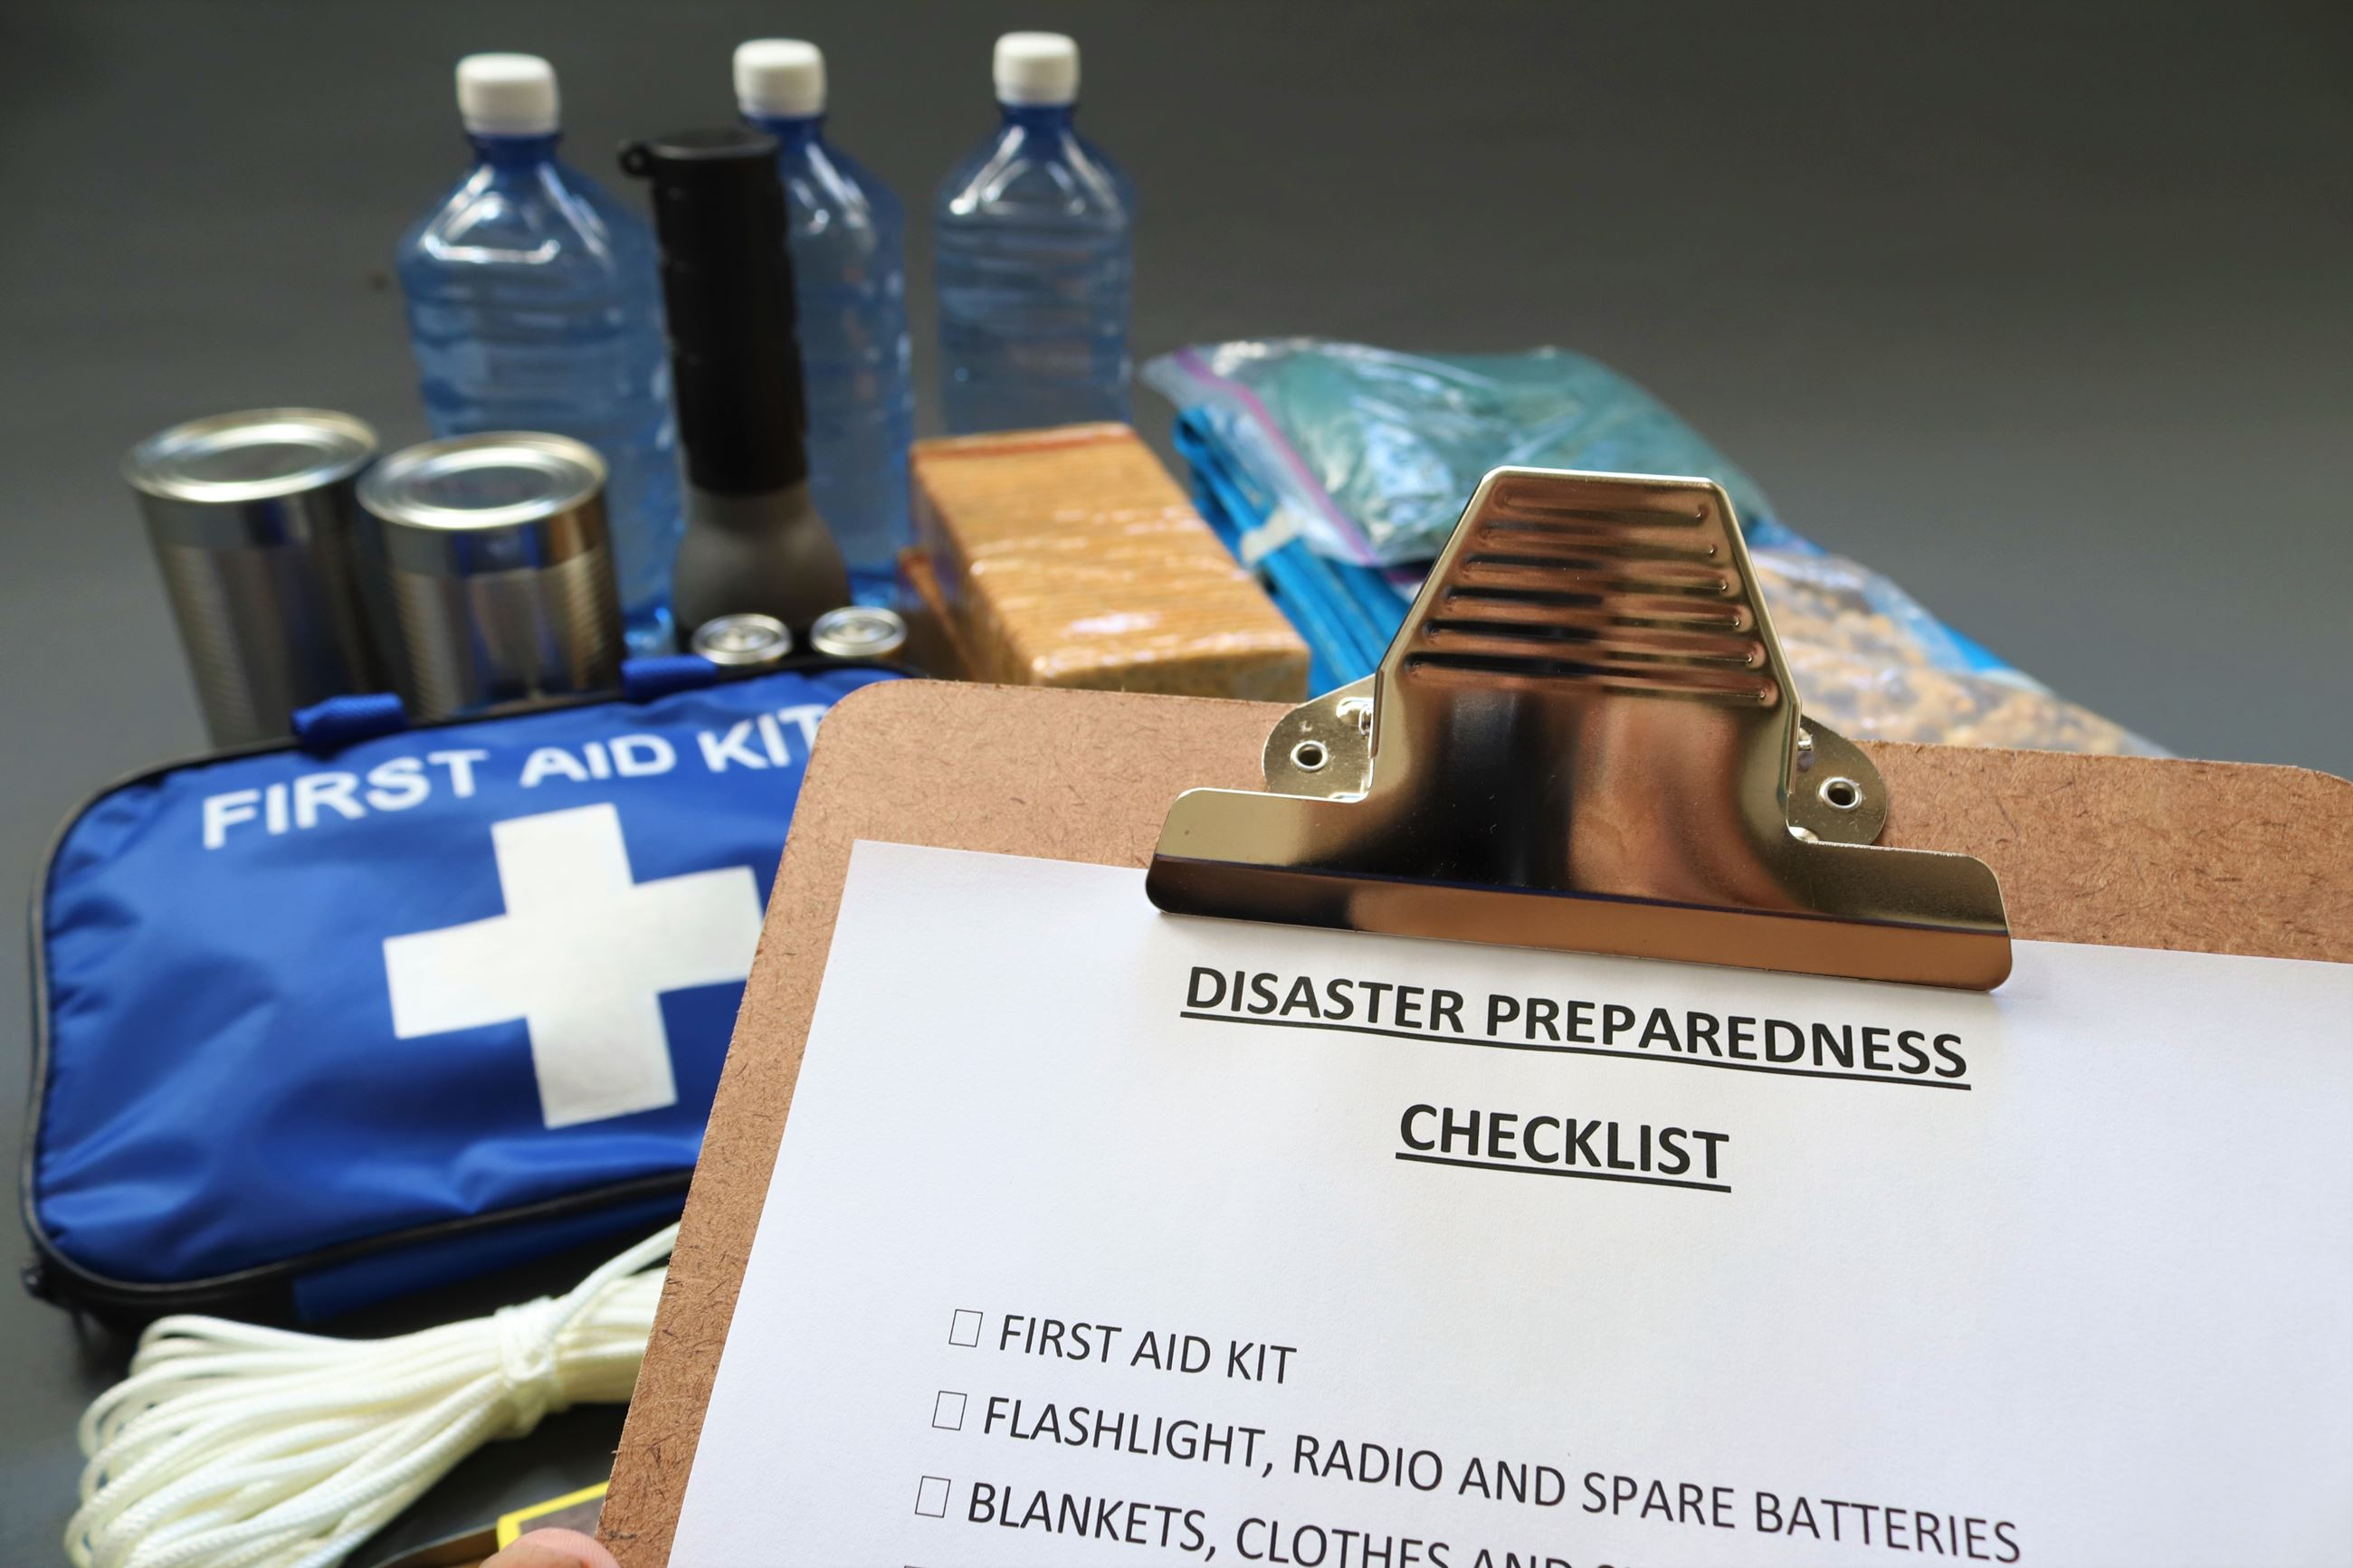 Disaster preparedness checklist and supplies